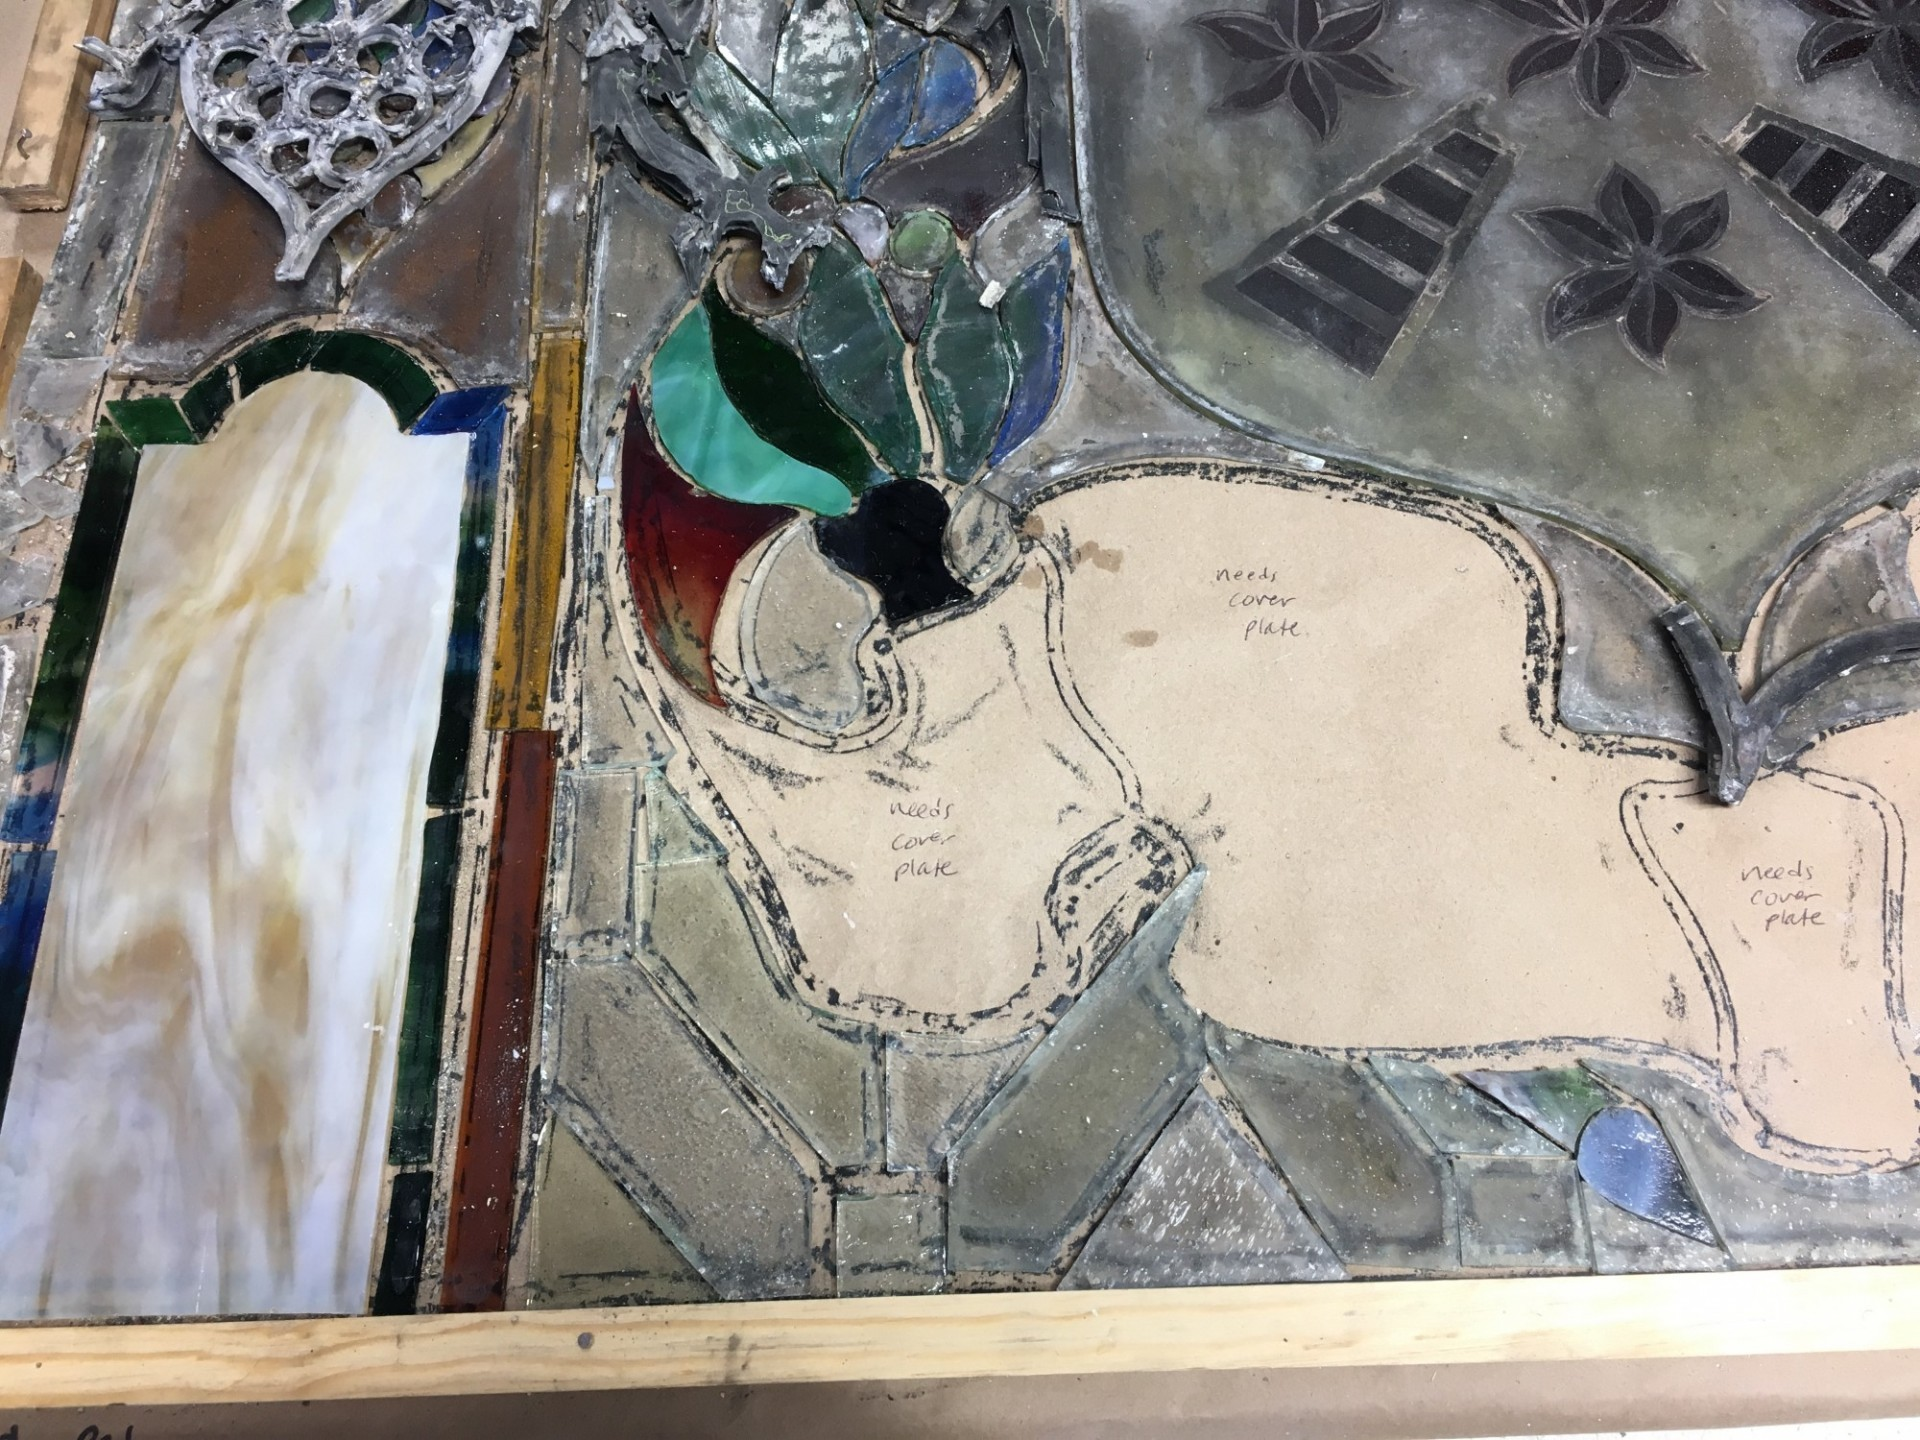 A portion of the stained glass windows being restored at a restoration studio